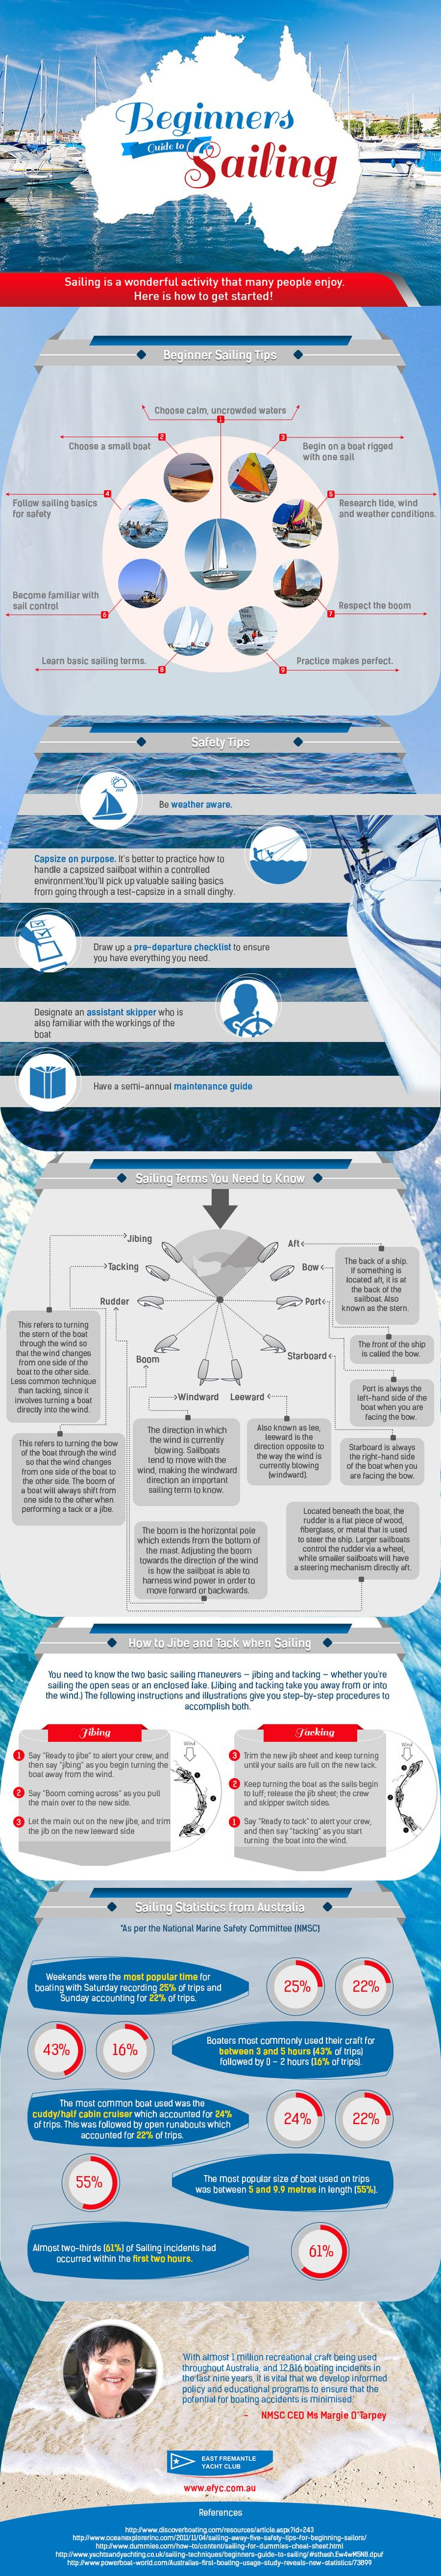 Beginners Guide to Sailing #infographic #Sailing #Travel